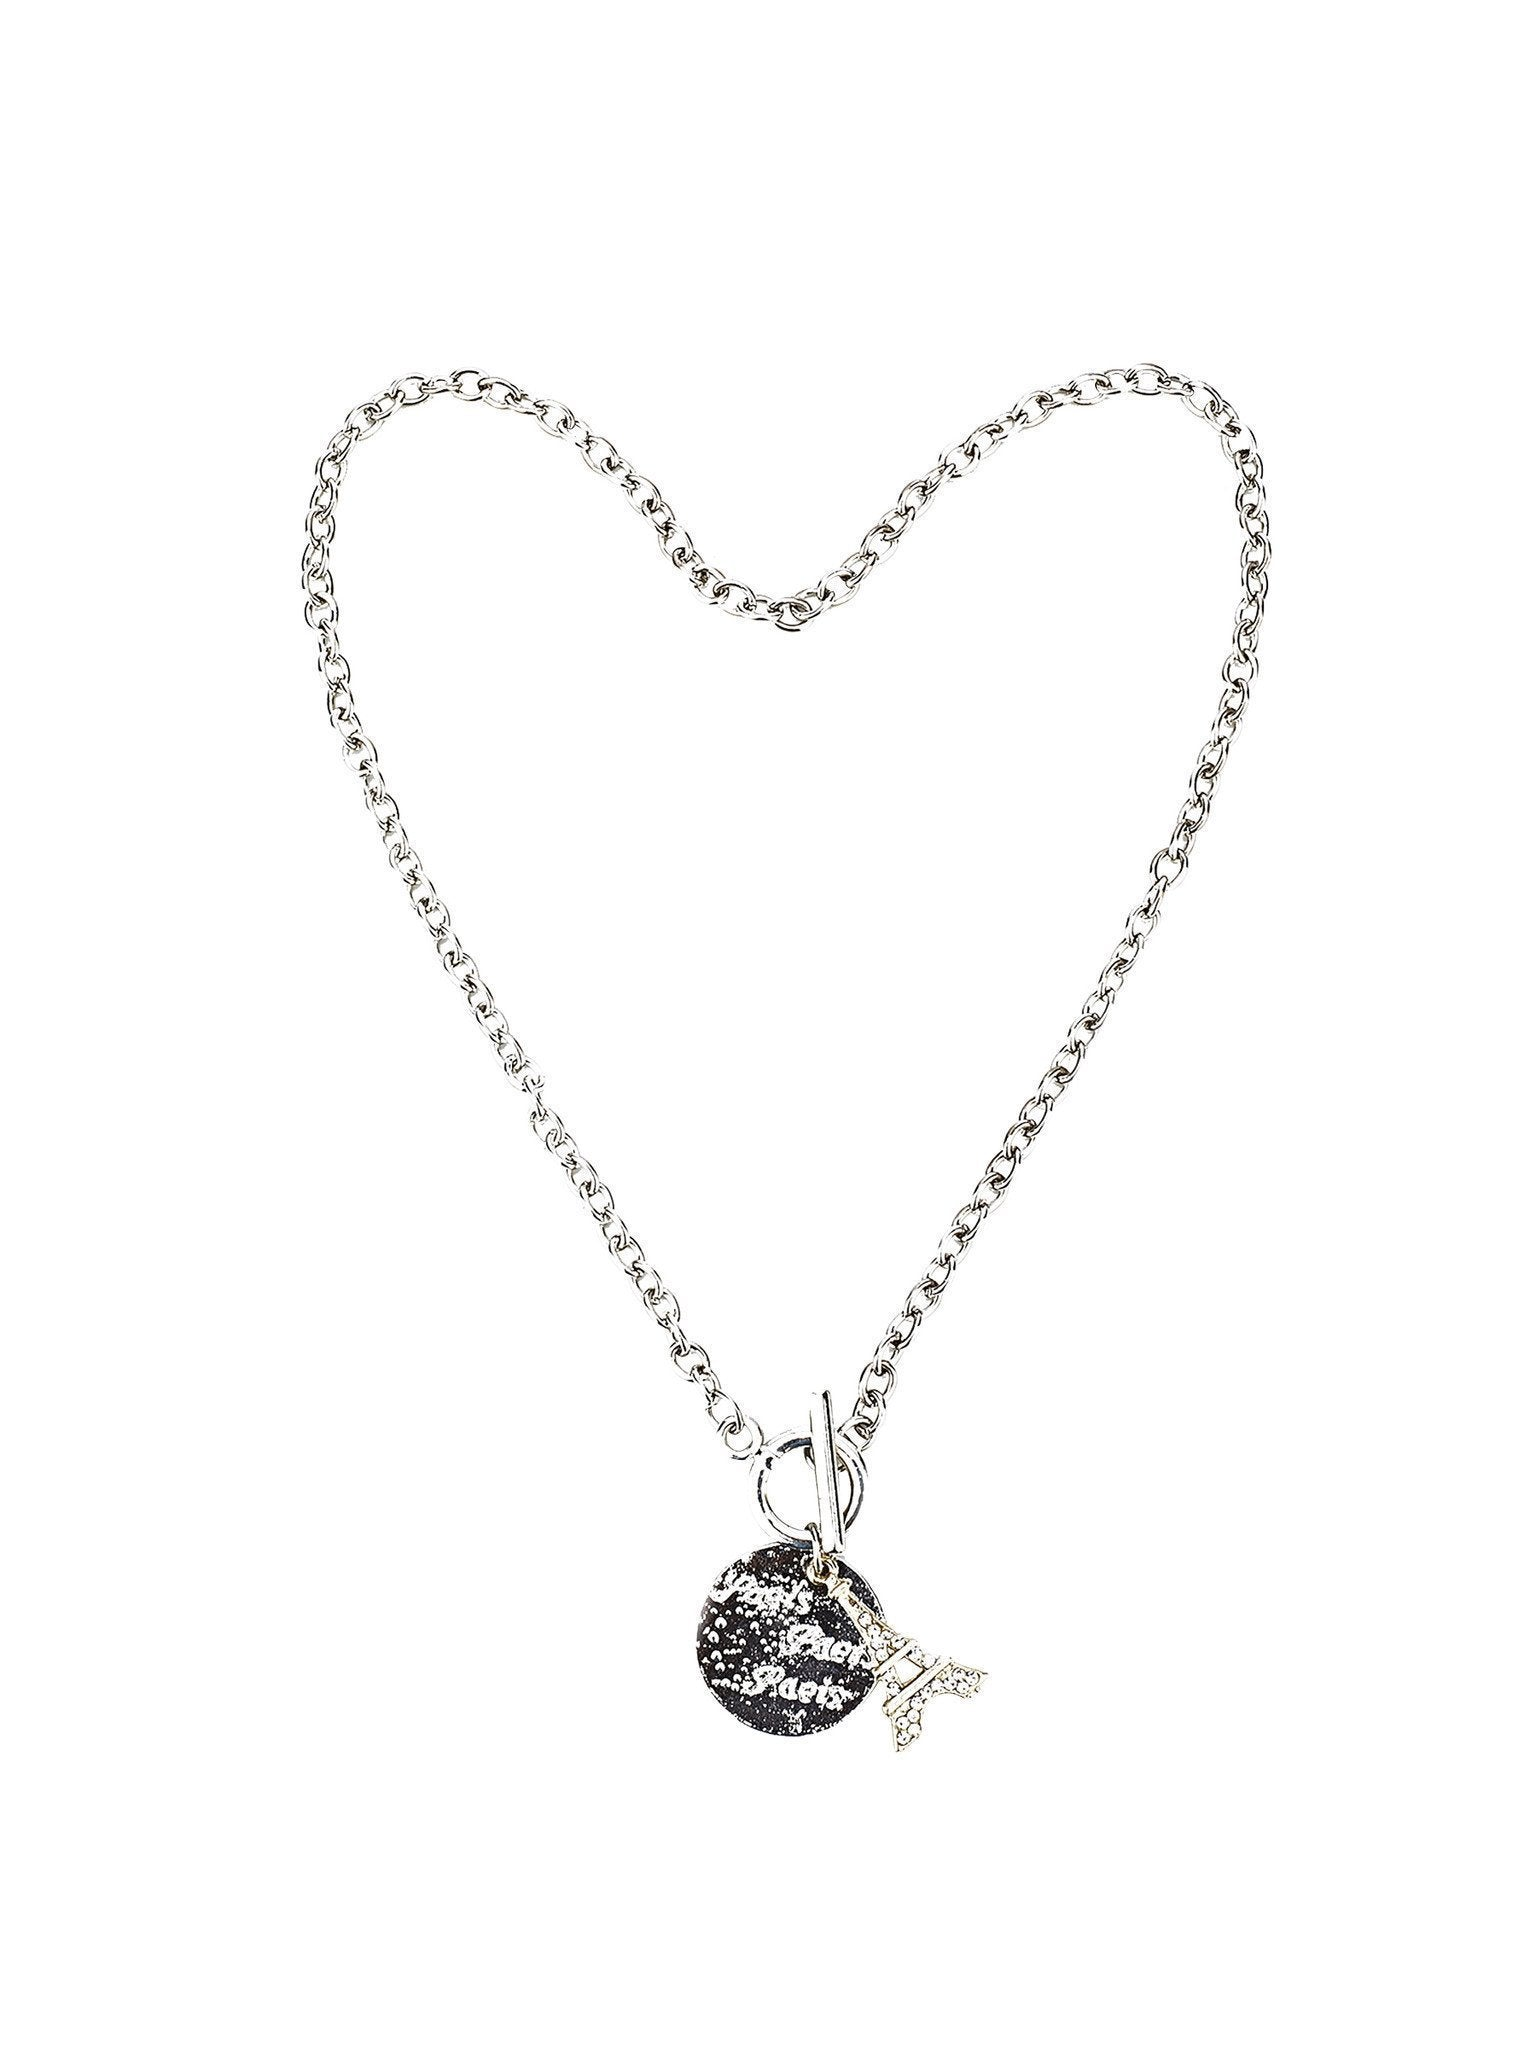 J'Adore Paris Necklace